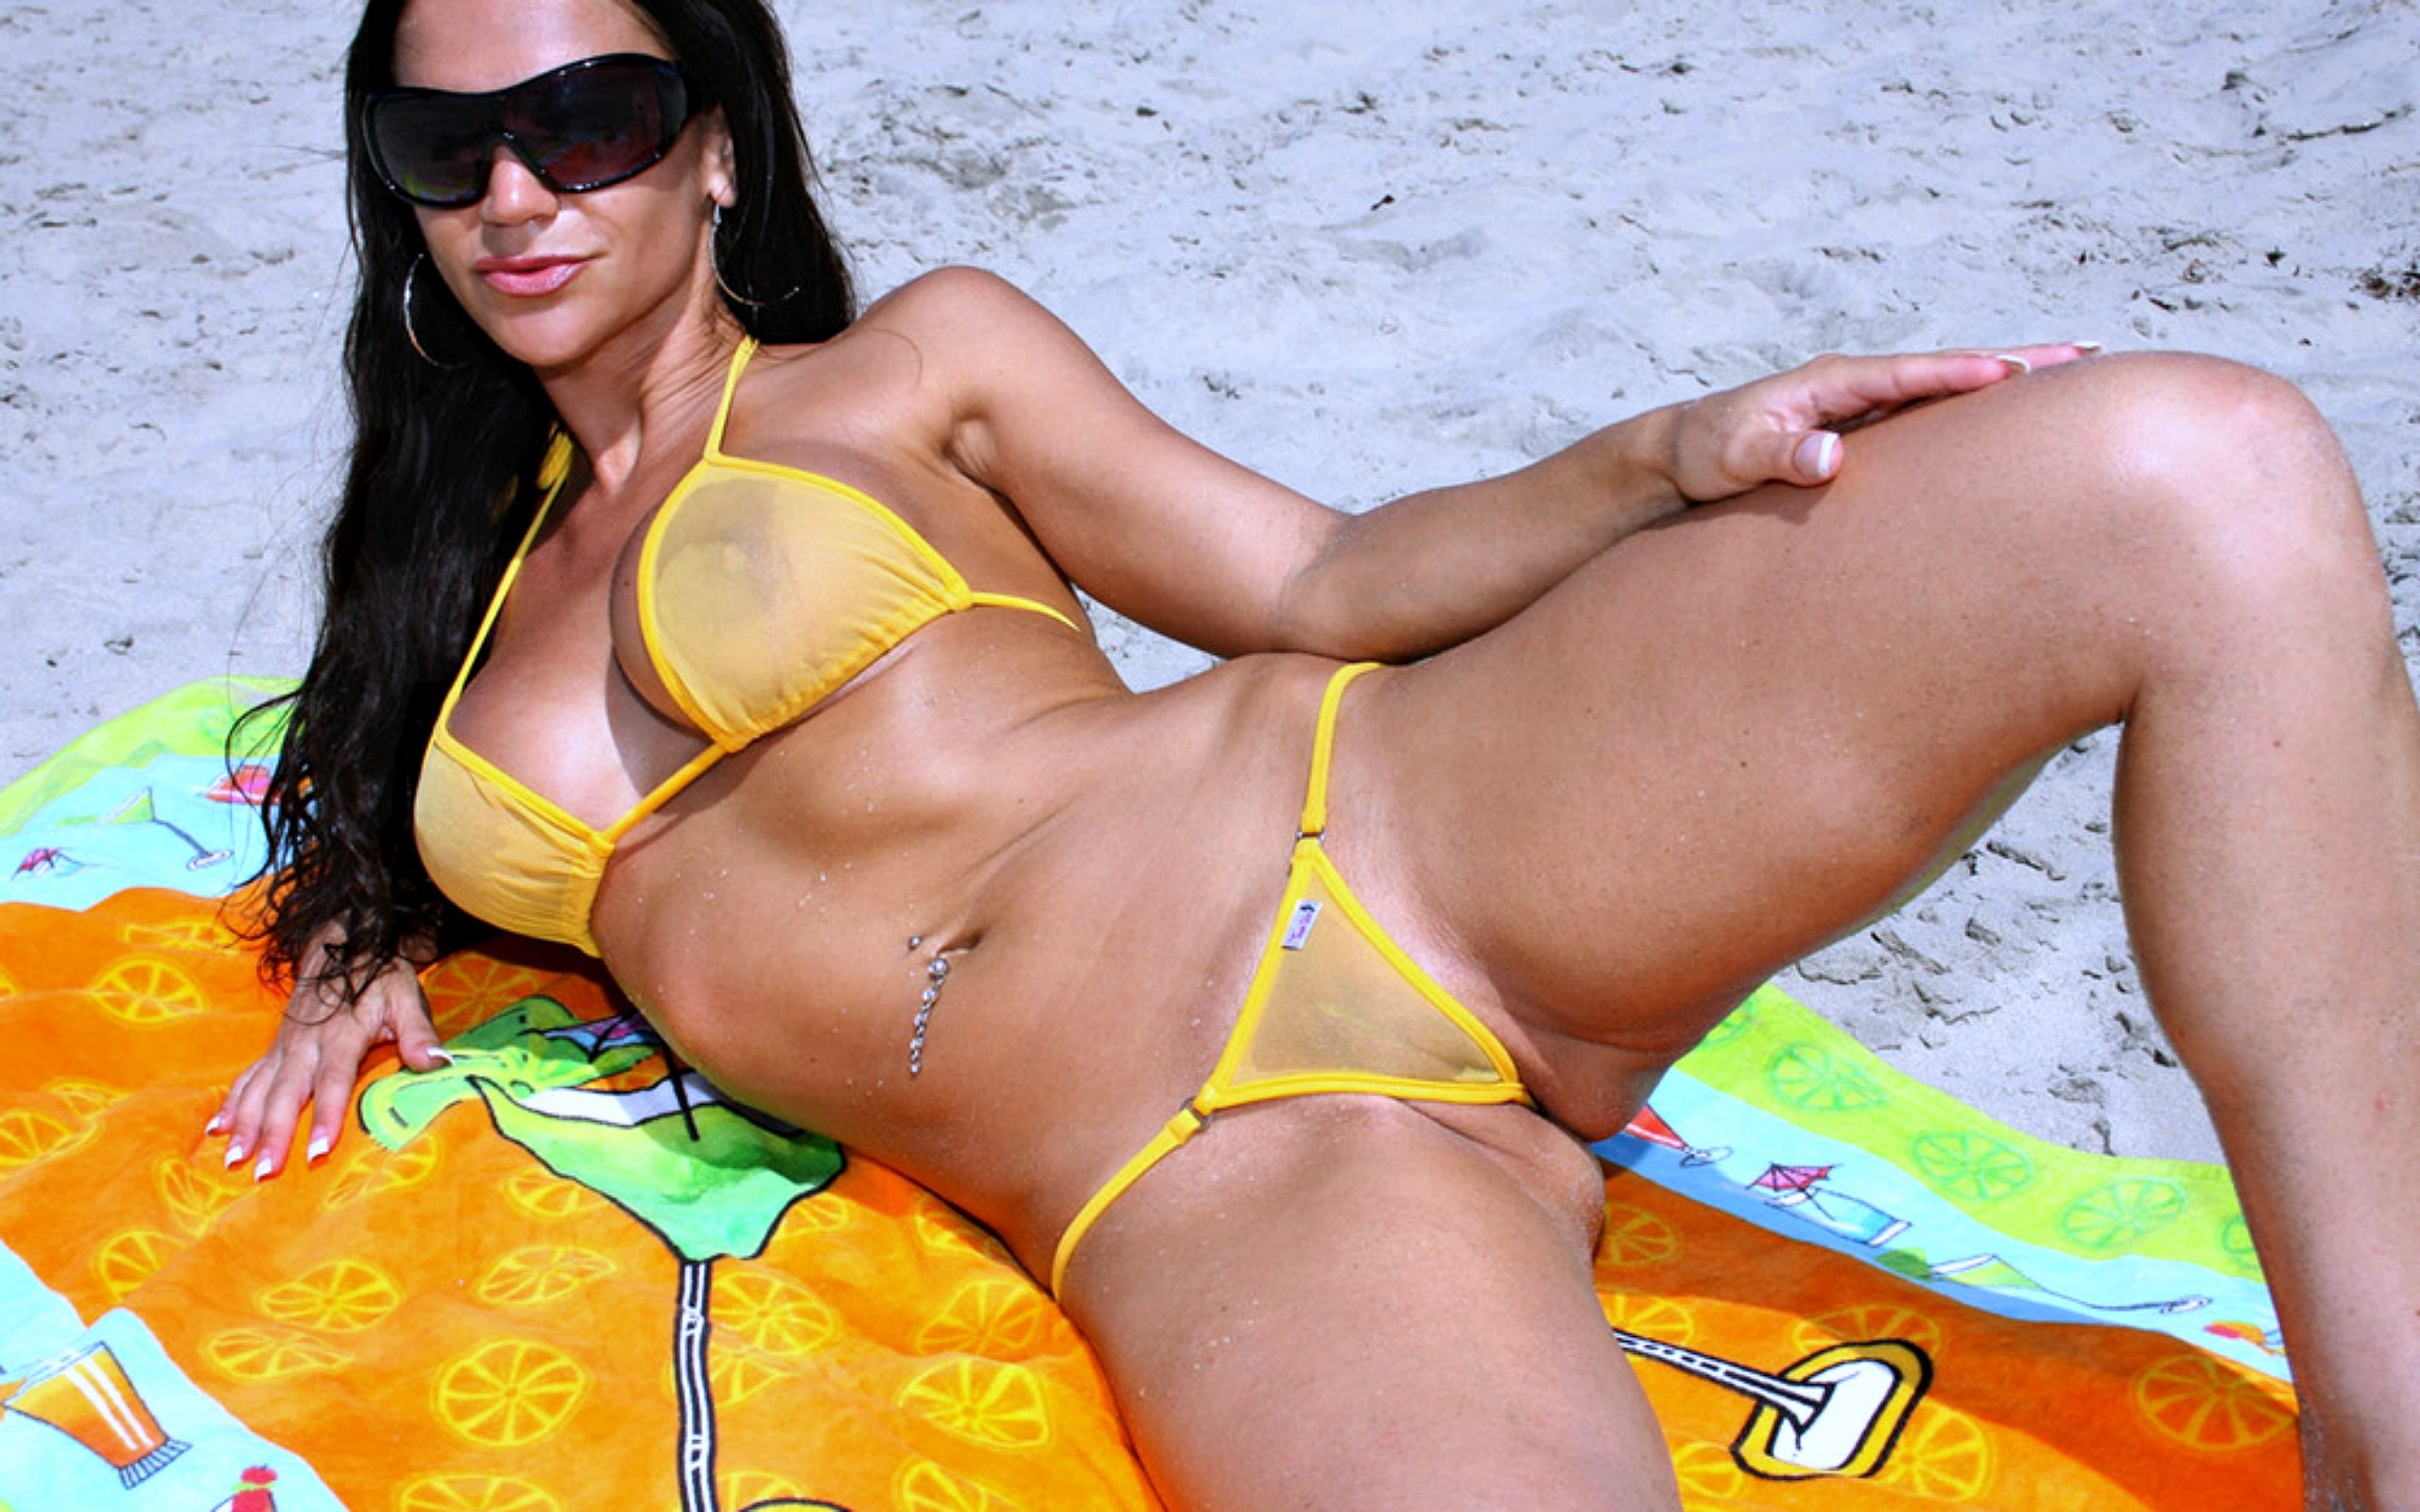 Tiny Yellow See Through Bikini On Brunette